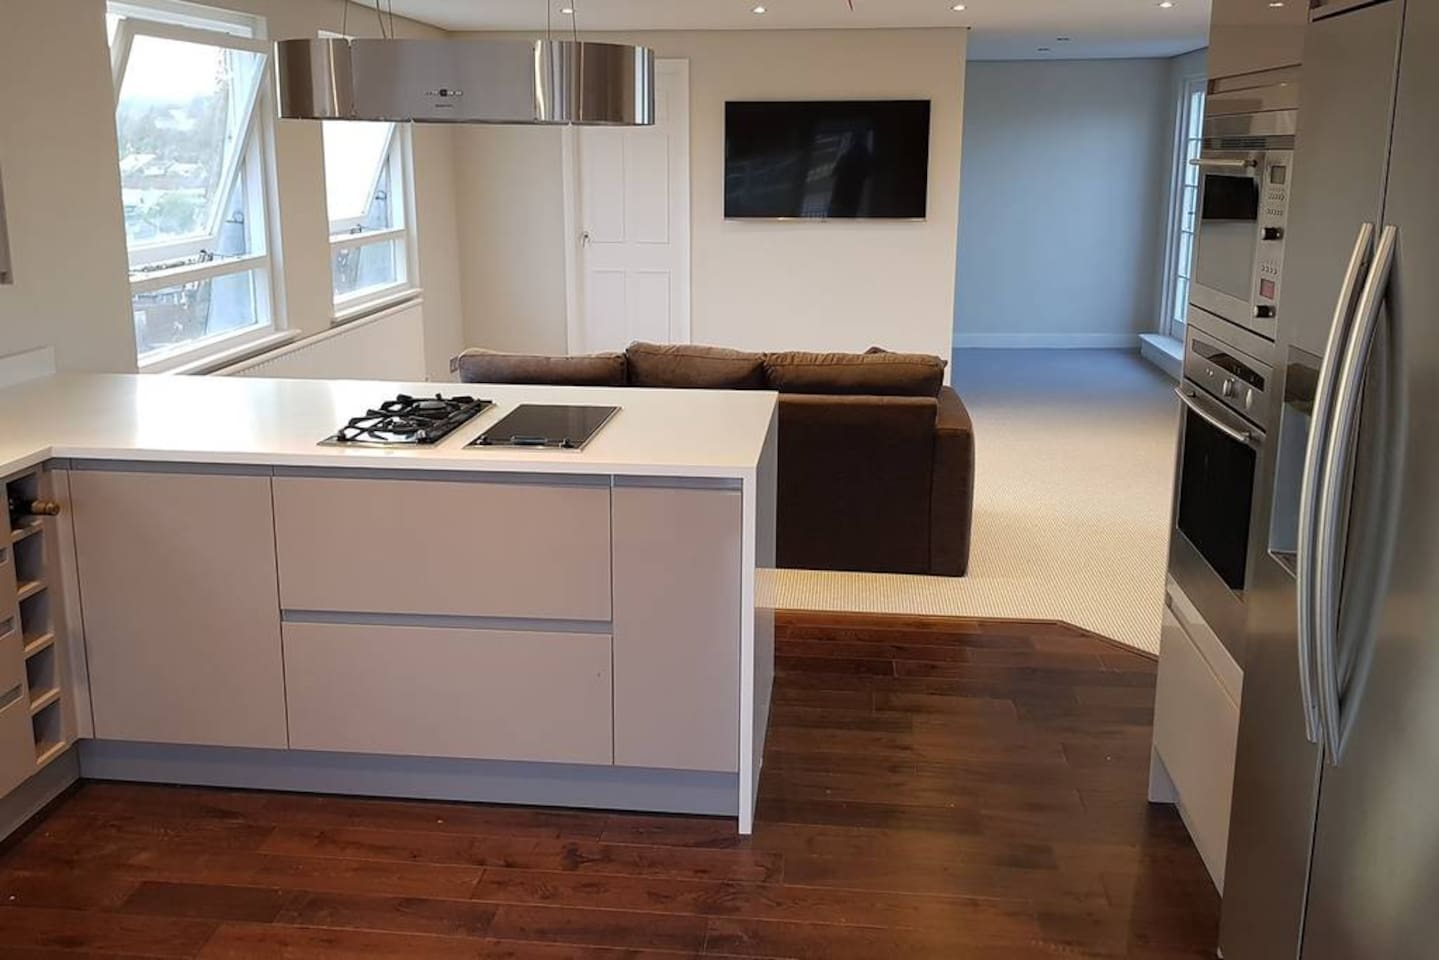 Kitchen into lounge